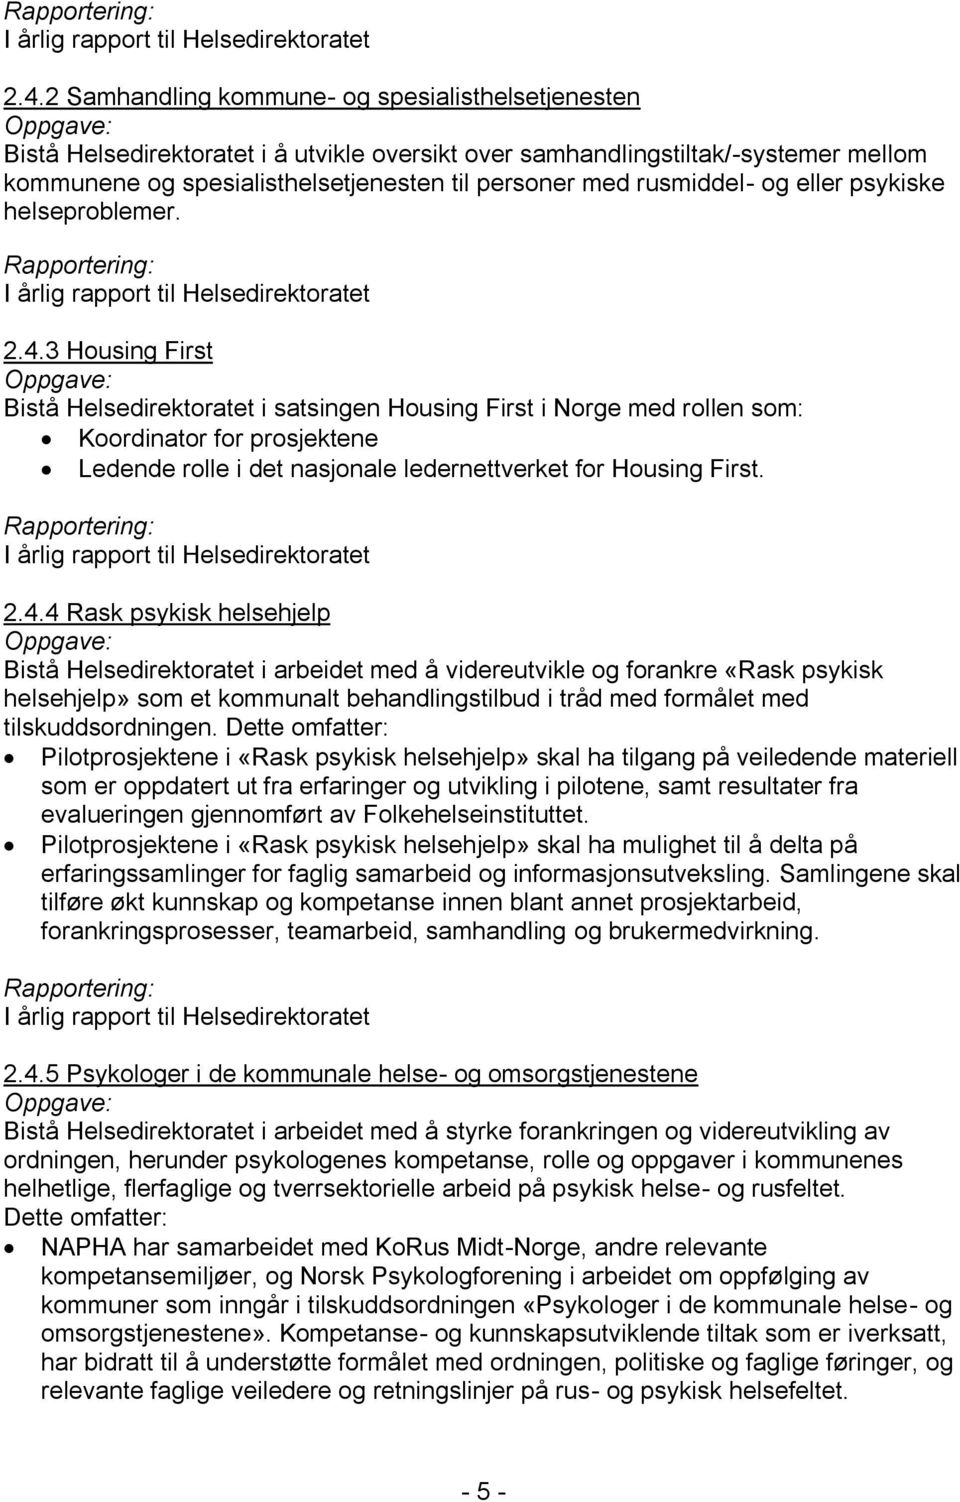 3 Housing First Bistå Helsedirektoratet i satsingen Housing First i Norge med rollen som: Koordinator for prosjektene Ledende rolle i det nasjonale ledernettverket for Housing First. 2.4.